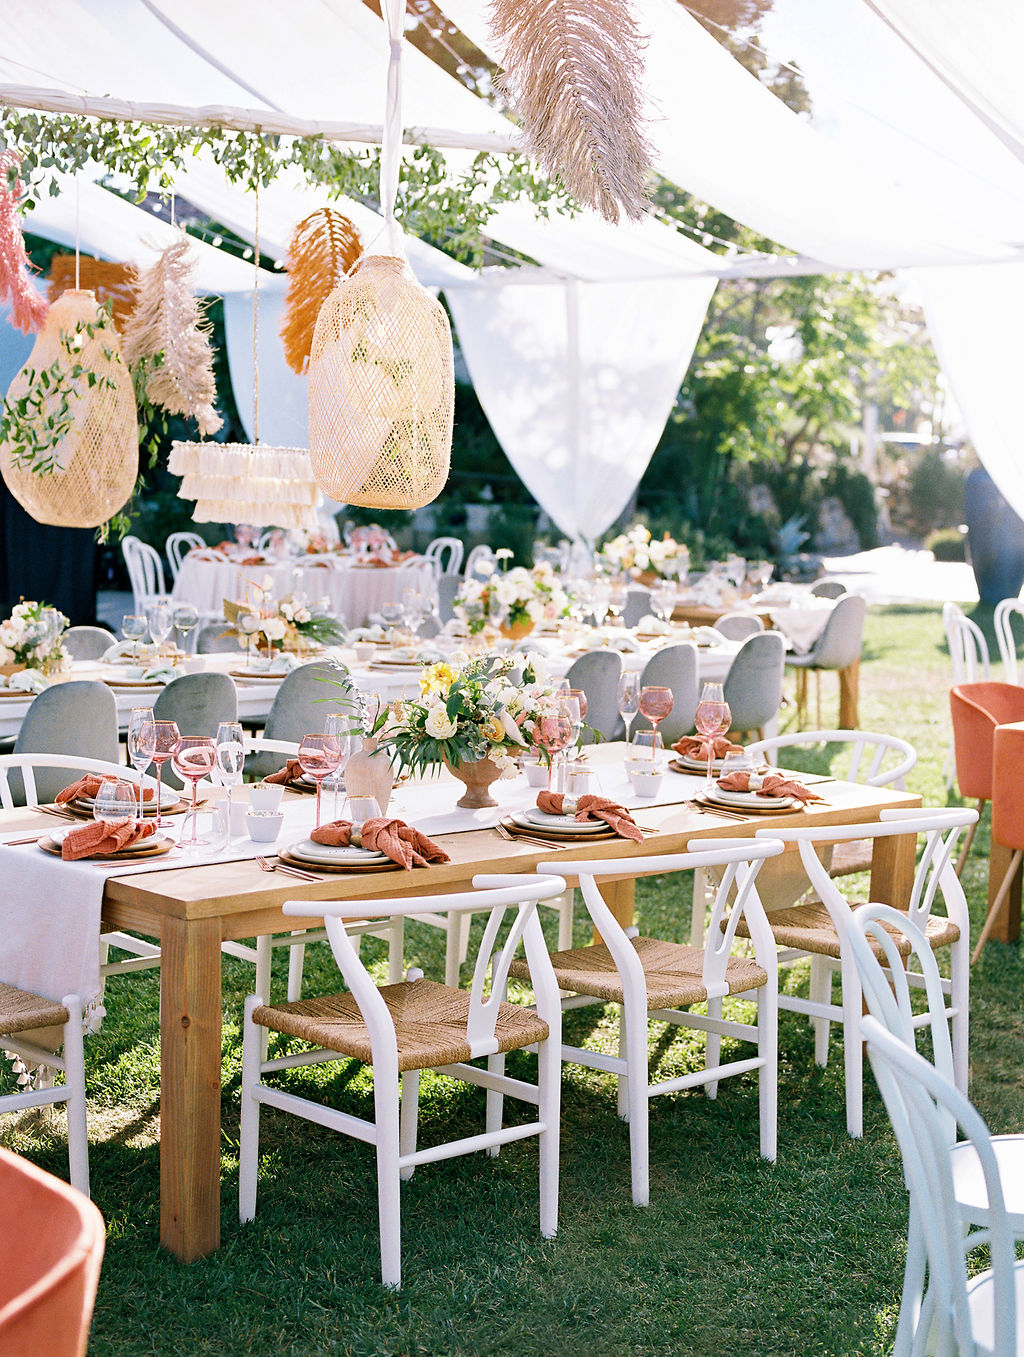 sara trisdan wedding outdoor reception set up with wicker seated chairs